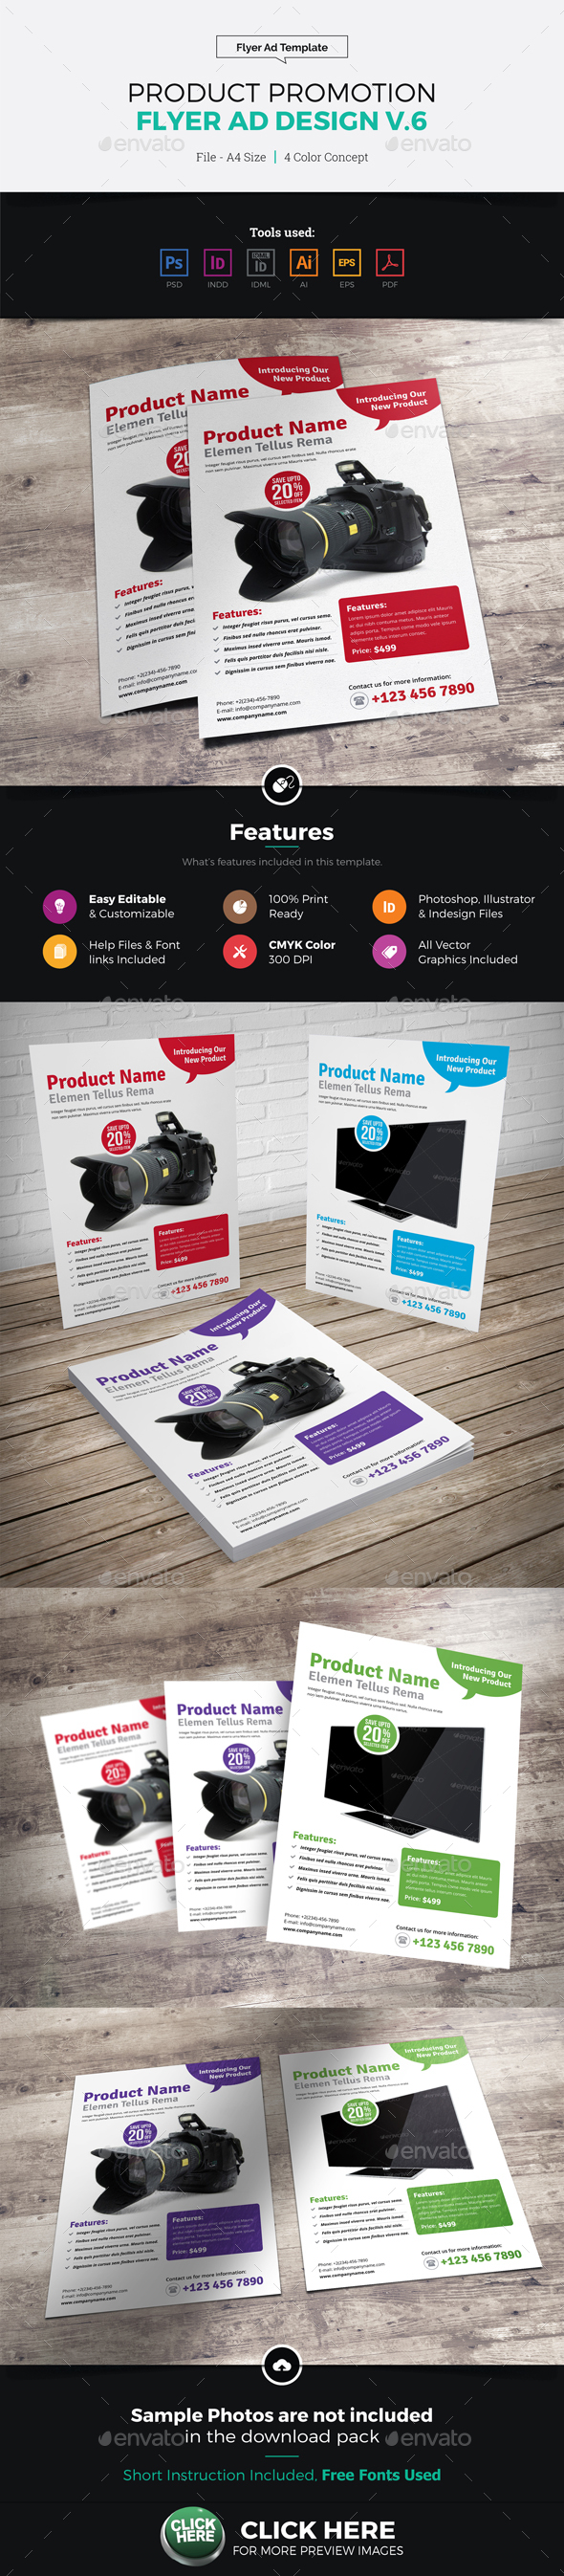 Product Sale Promotion Flyer Ad Design v6 - Corporate Flyers